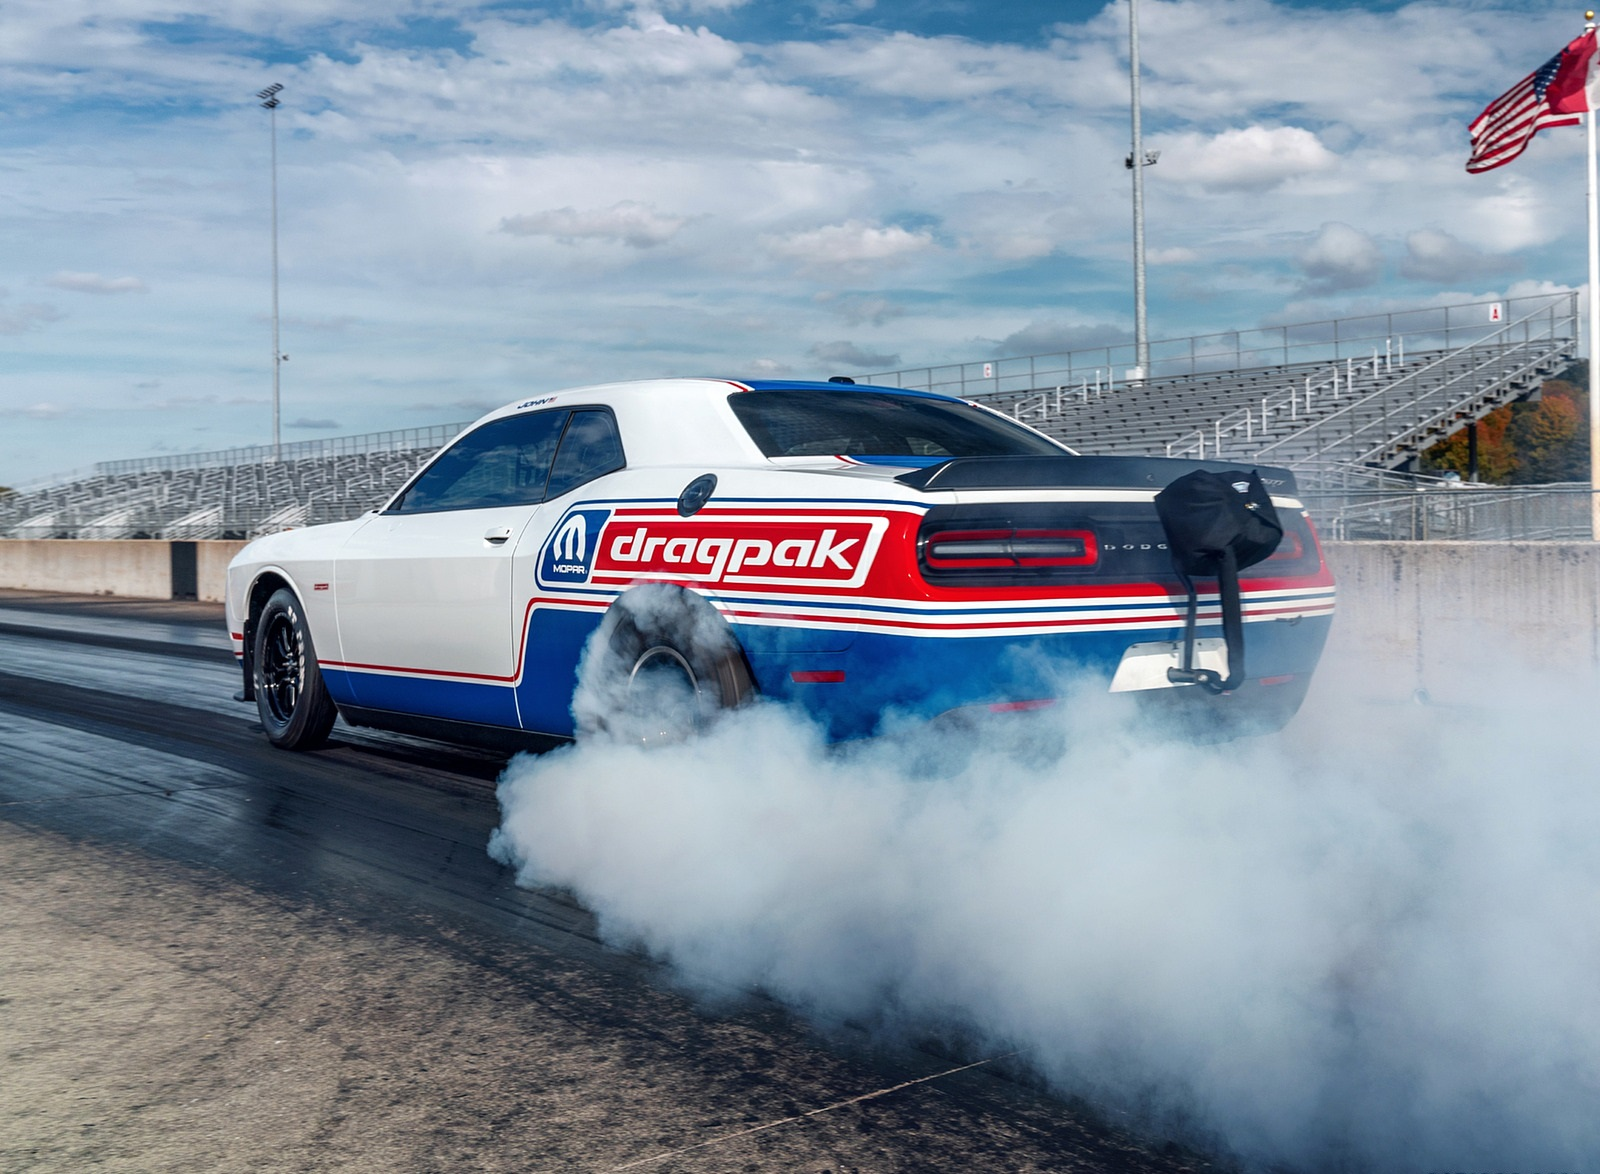 2021 Dodge Challenger Mopar Drag Pak Burnout Wallpapers (7)